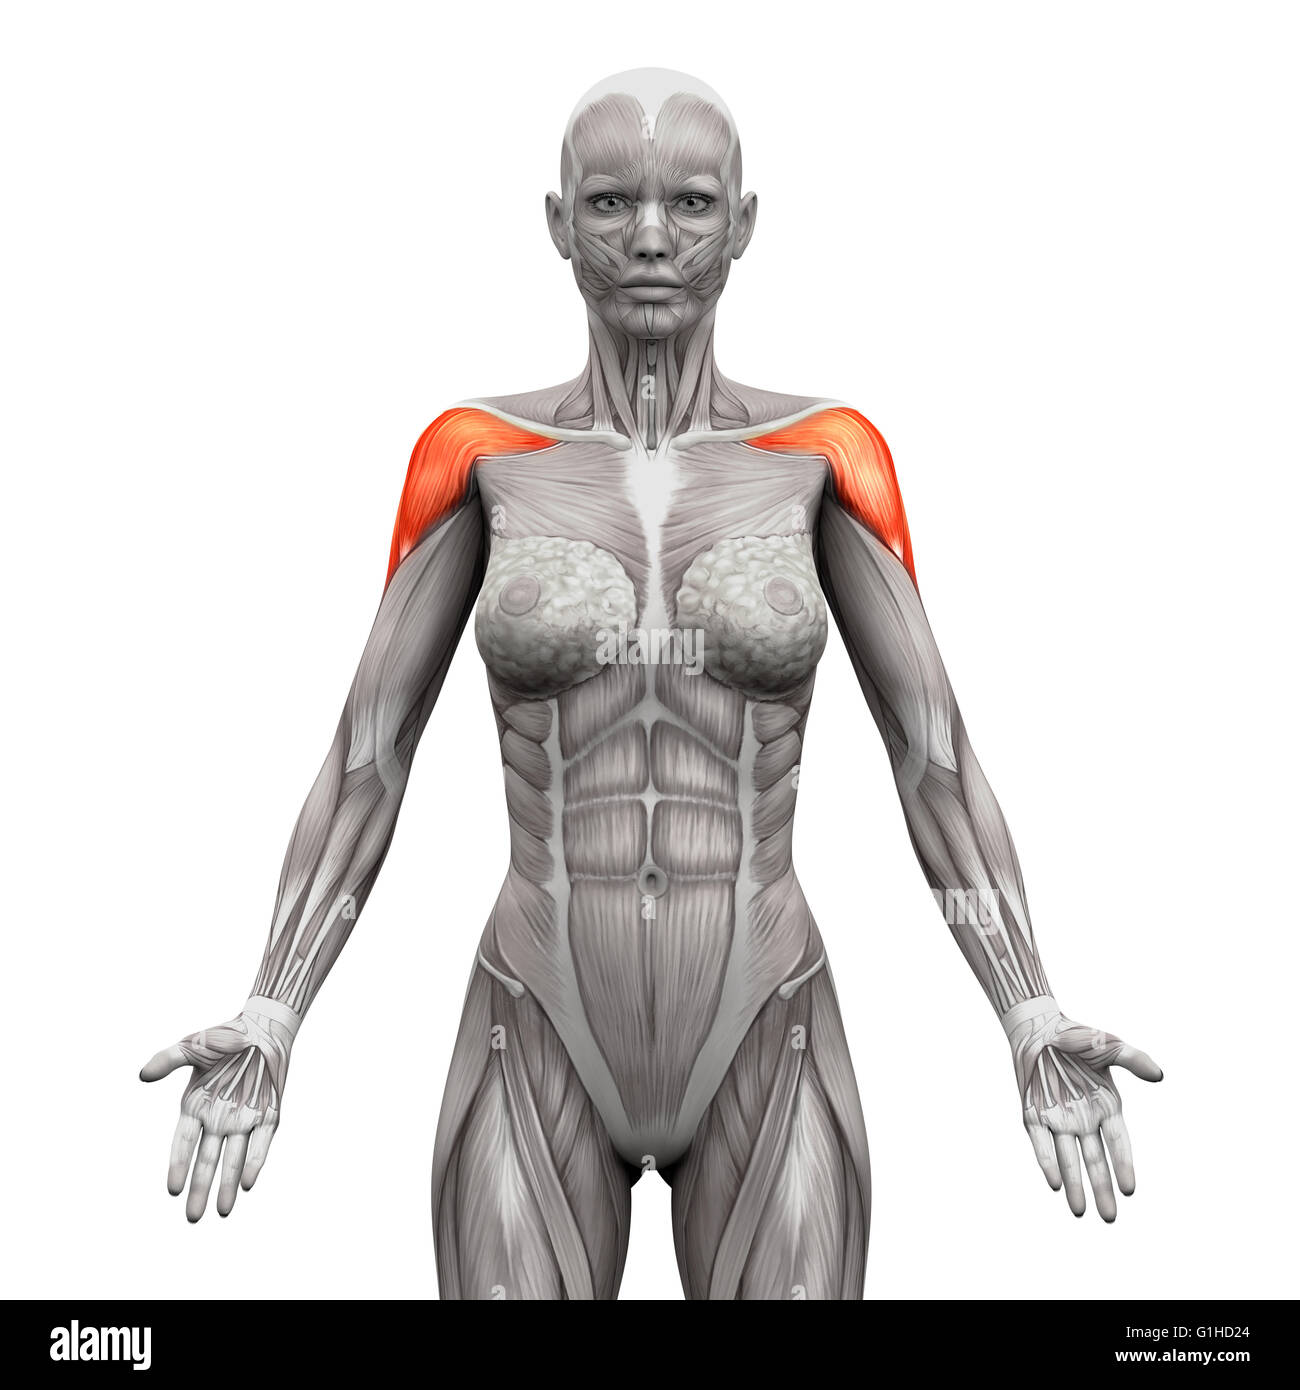 Female Body Muscles Illustration On Stockfotos & Female Body Muscles ...